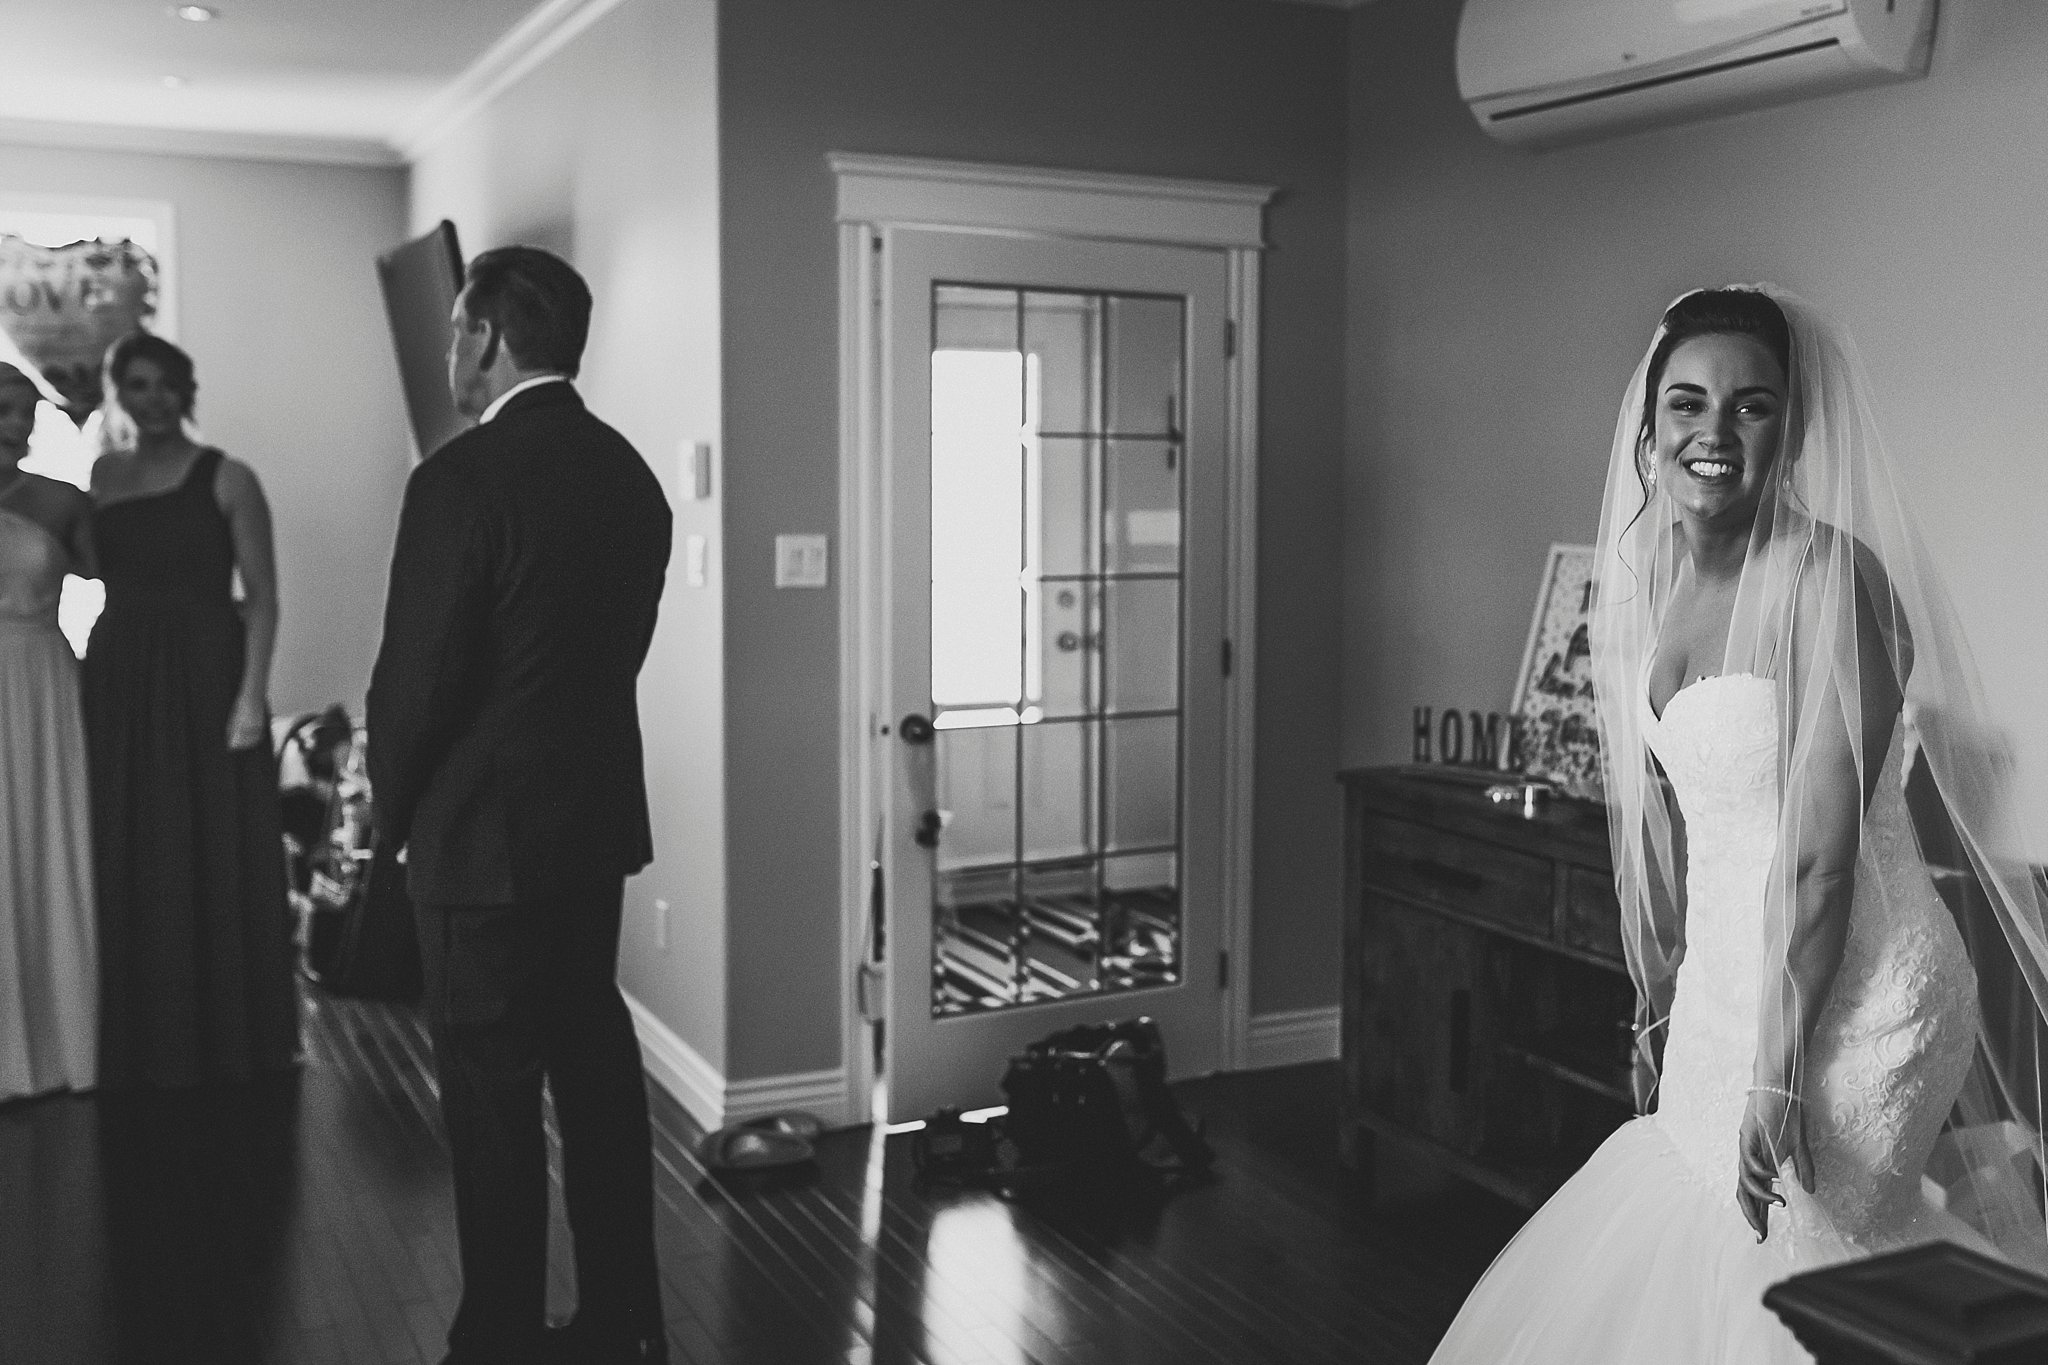 Bride in her Maggie Sottero wedding dress from The Model Shop in St. John's, NL waits for dad to see her.